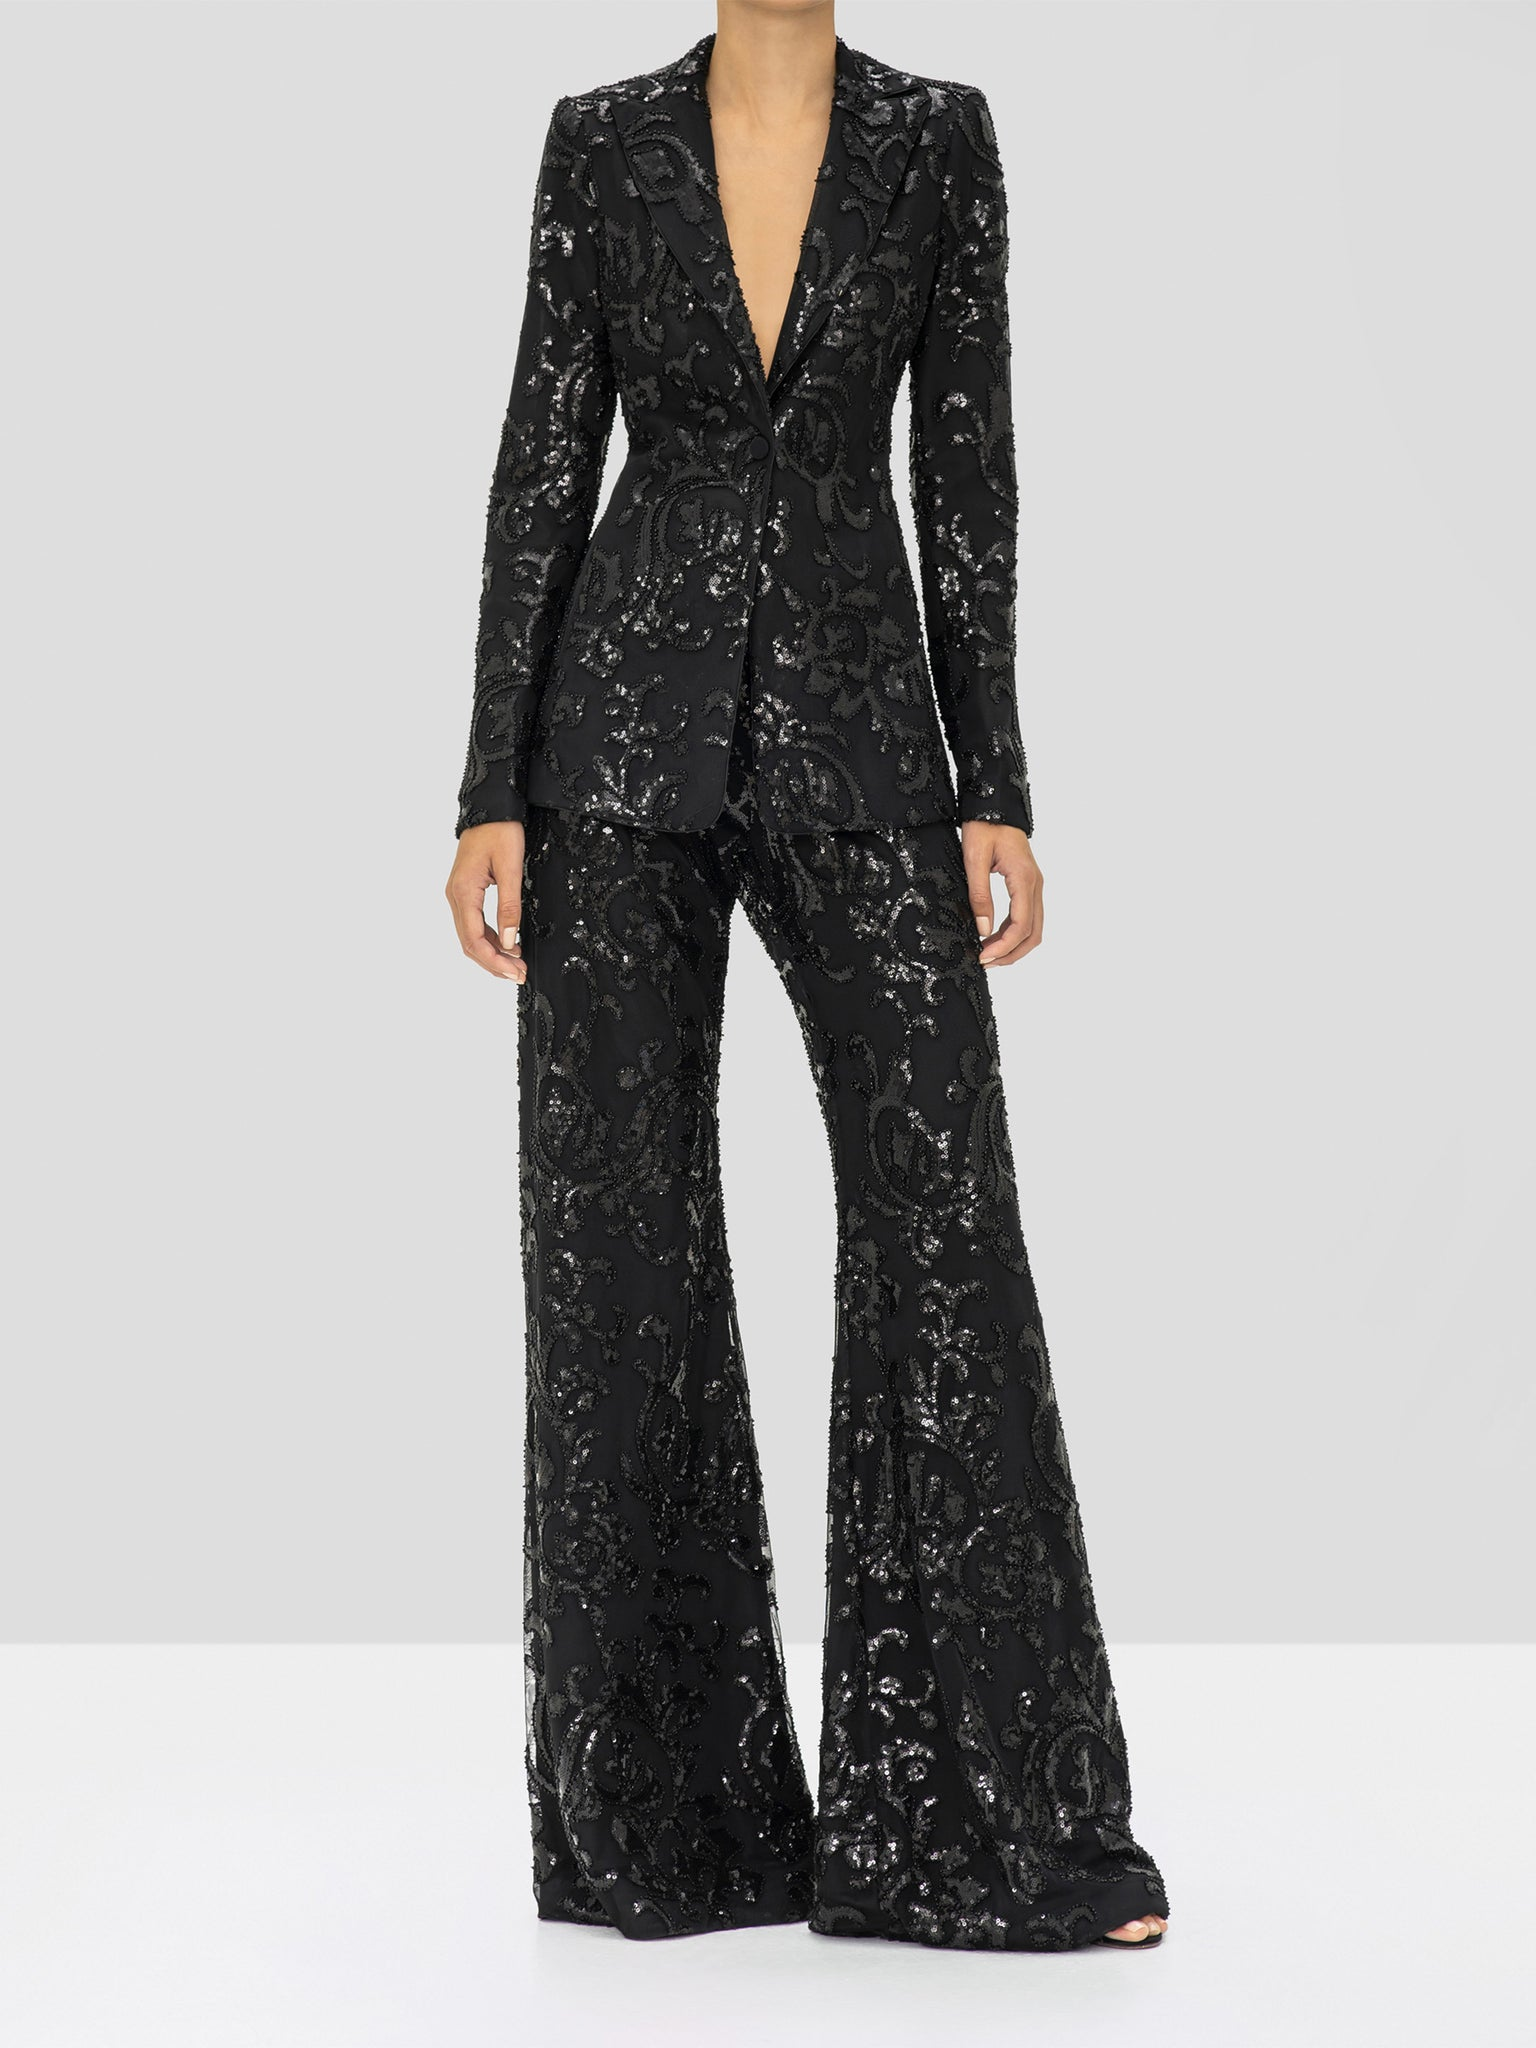 Alexis Firdas Jacket and Silvestro Pant in Beaded Black from the Holiday 2019 Collection